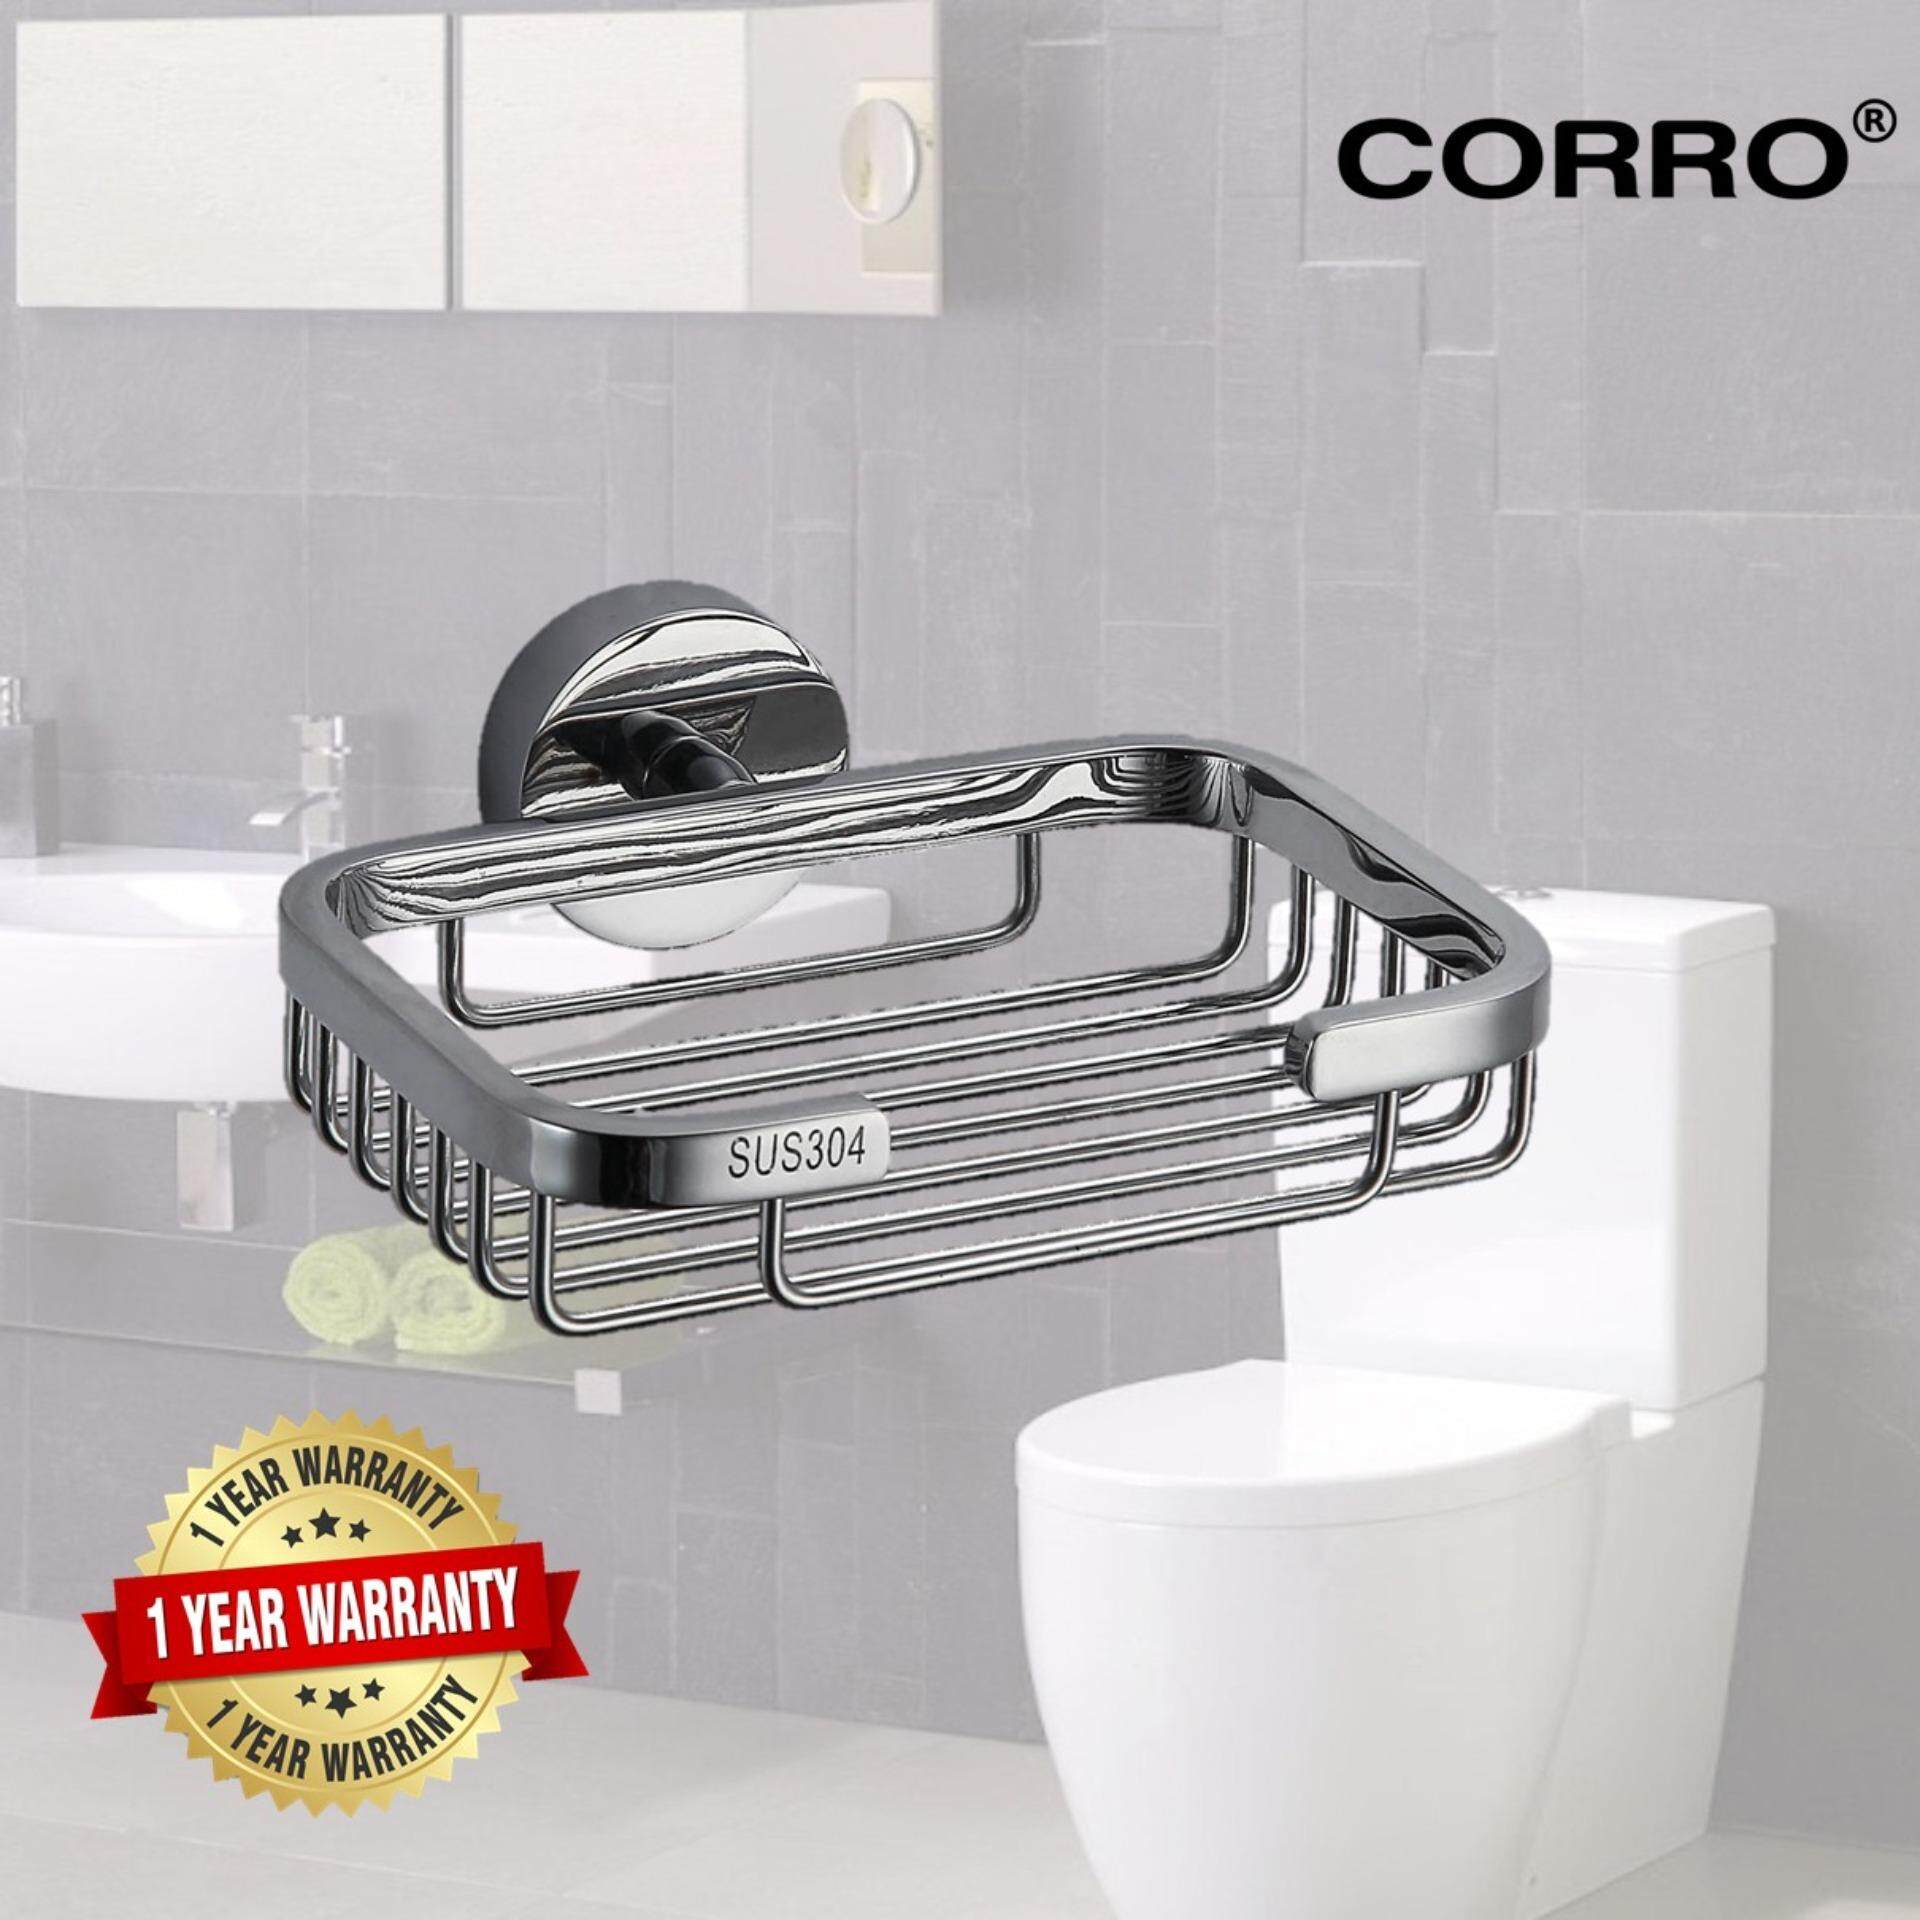 CORRO High Quality SUS304 Stainless Steel Soap Dish / Basket